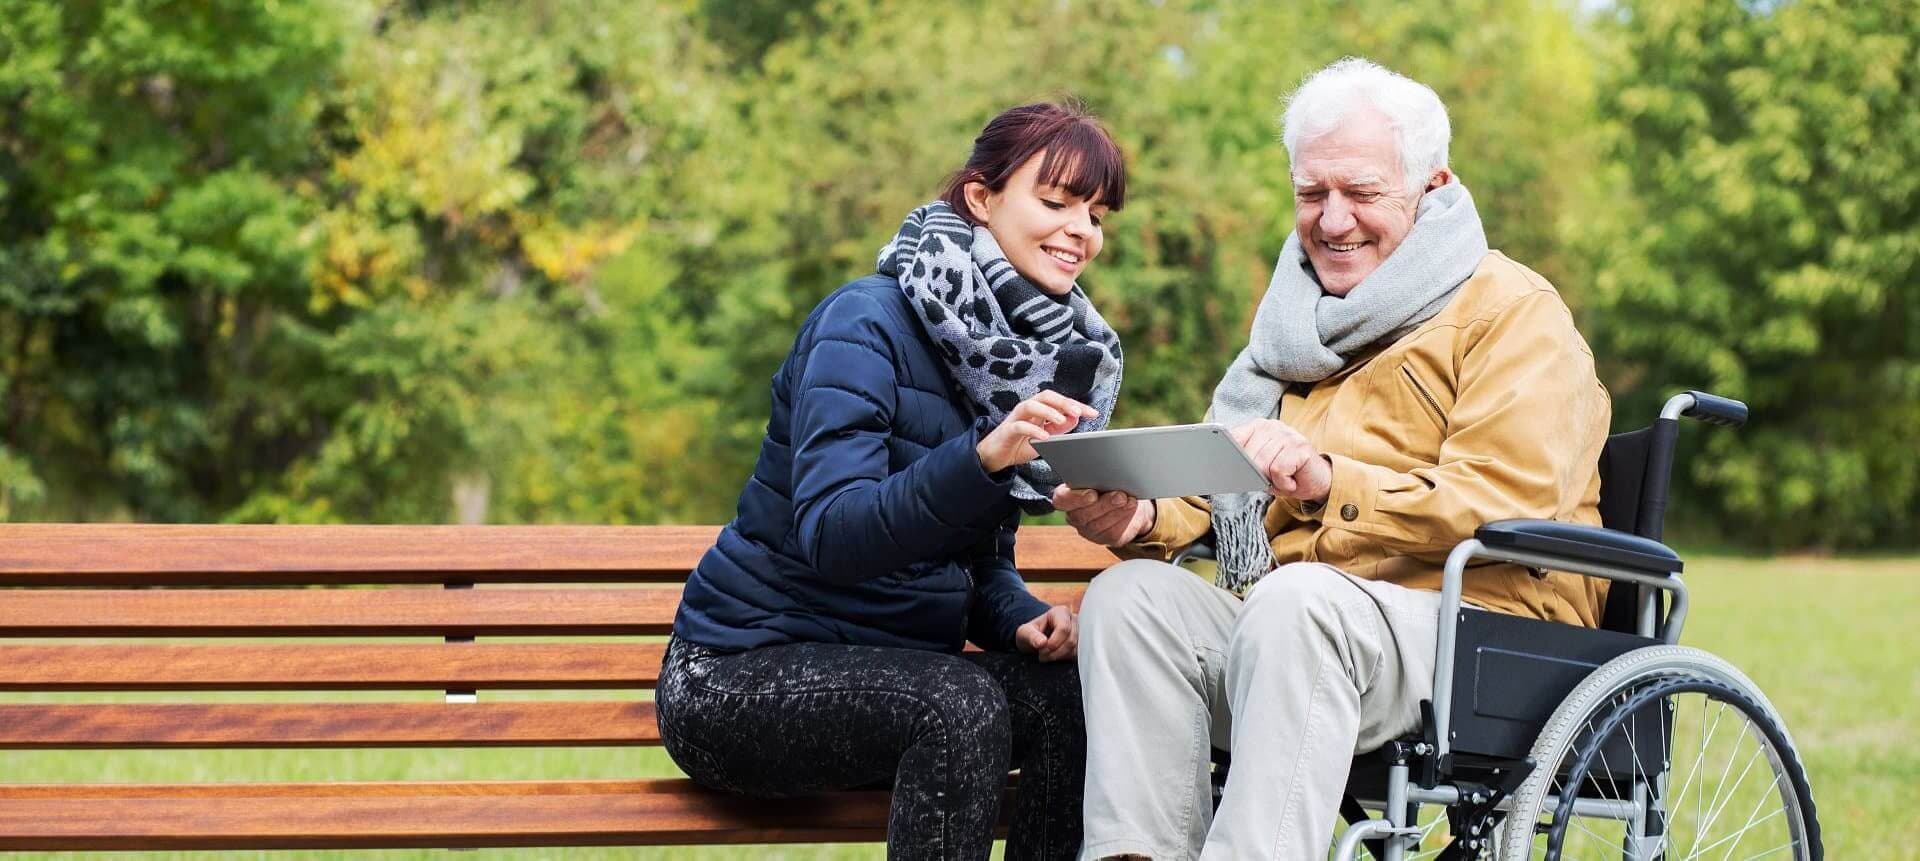 adult woman assisting senior man using a tablet